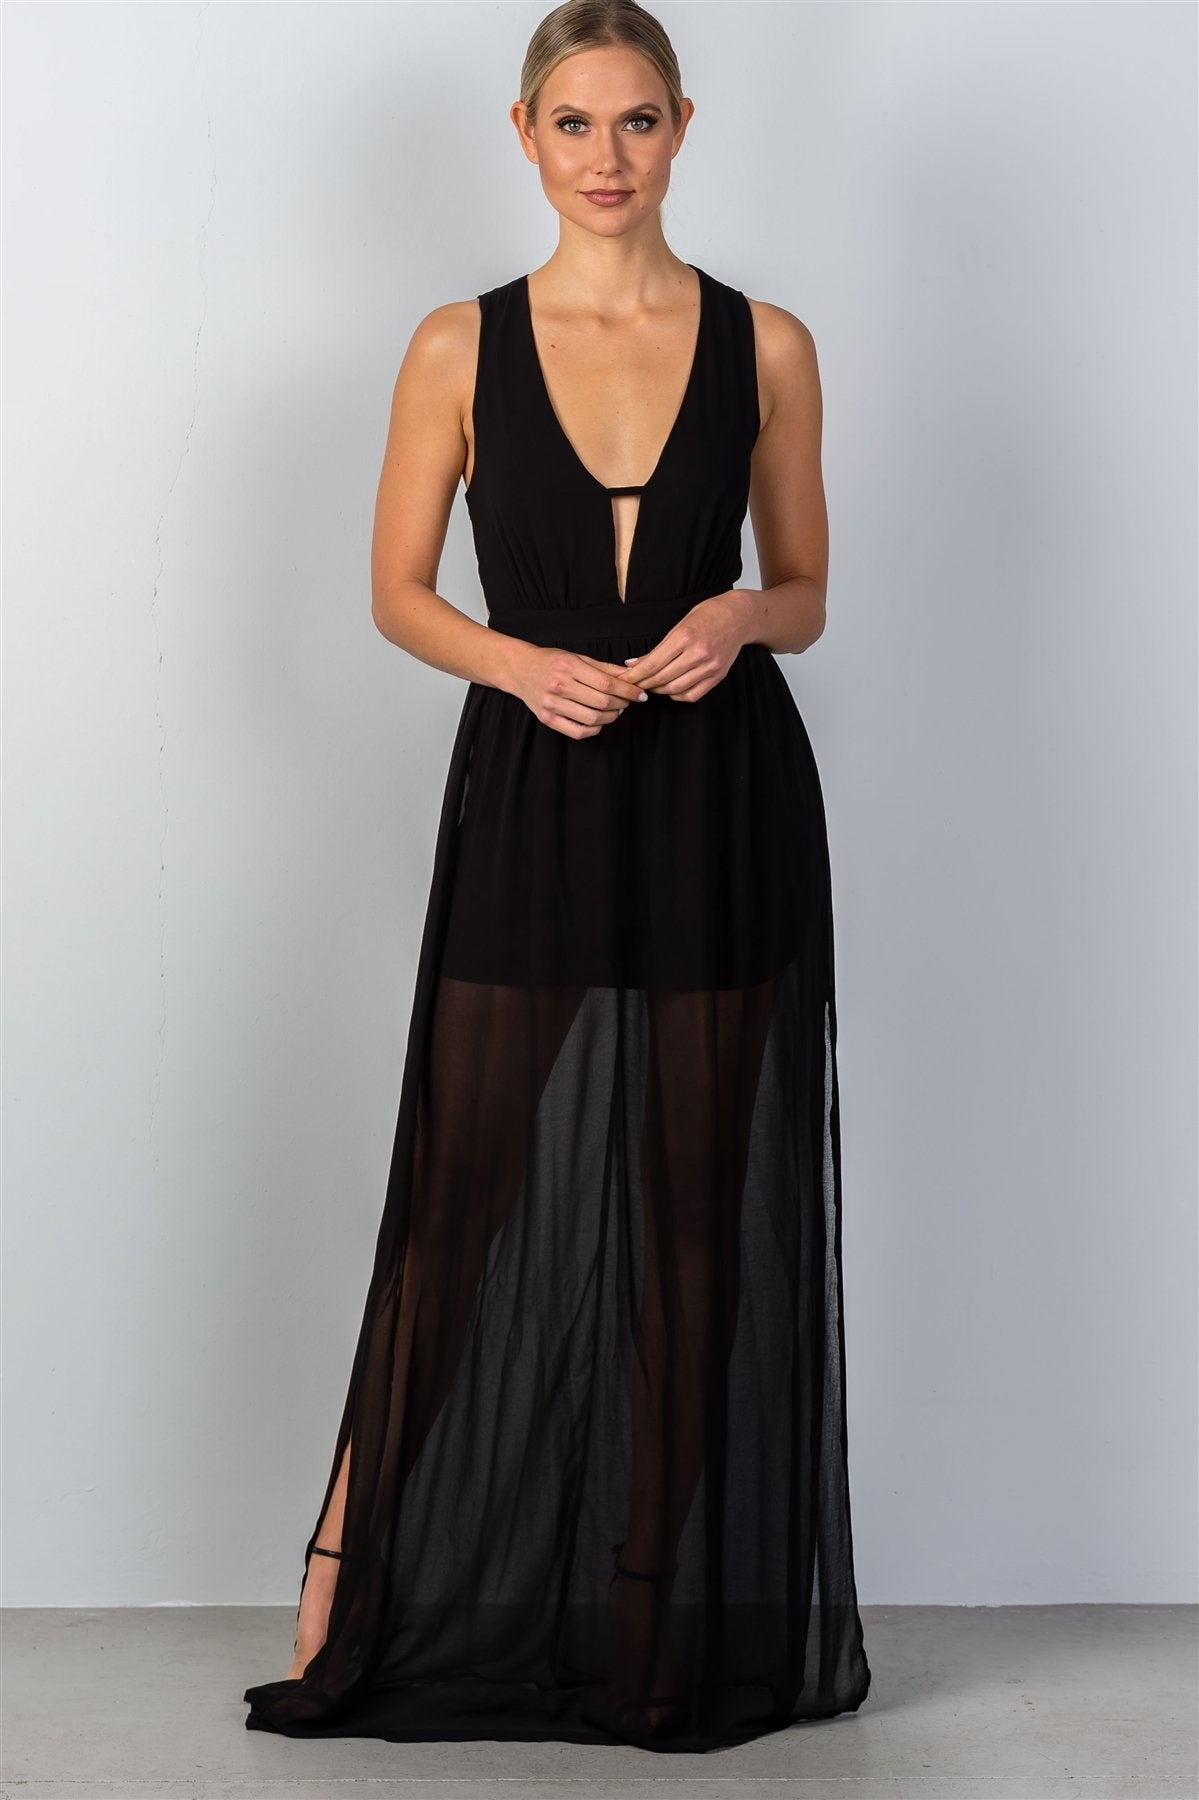 Ladies fashion black cut-out side slits maxi dress